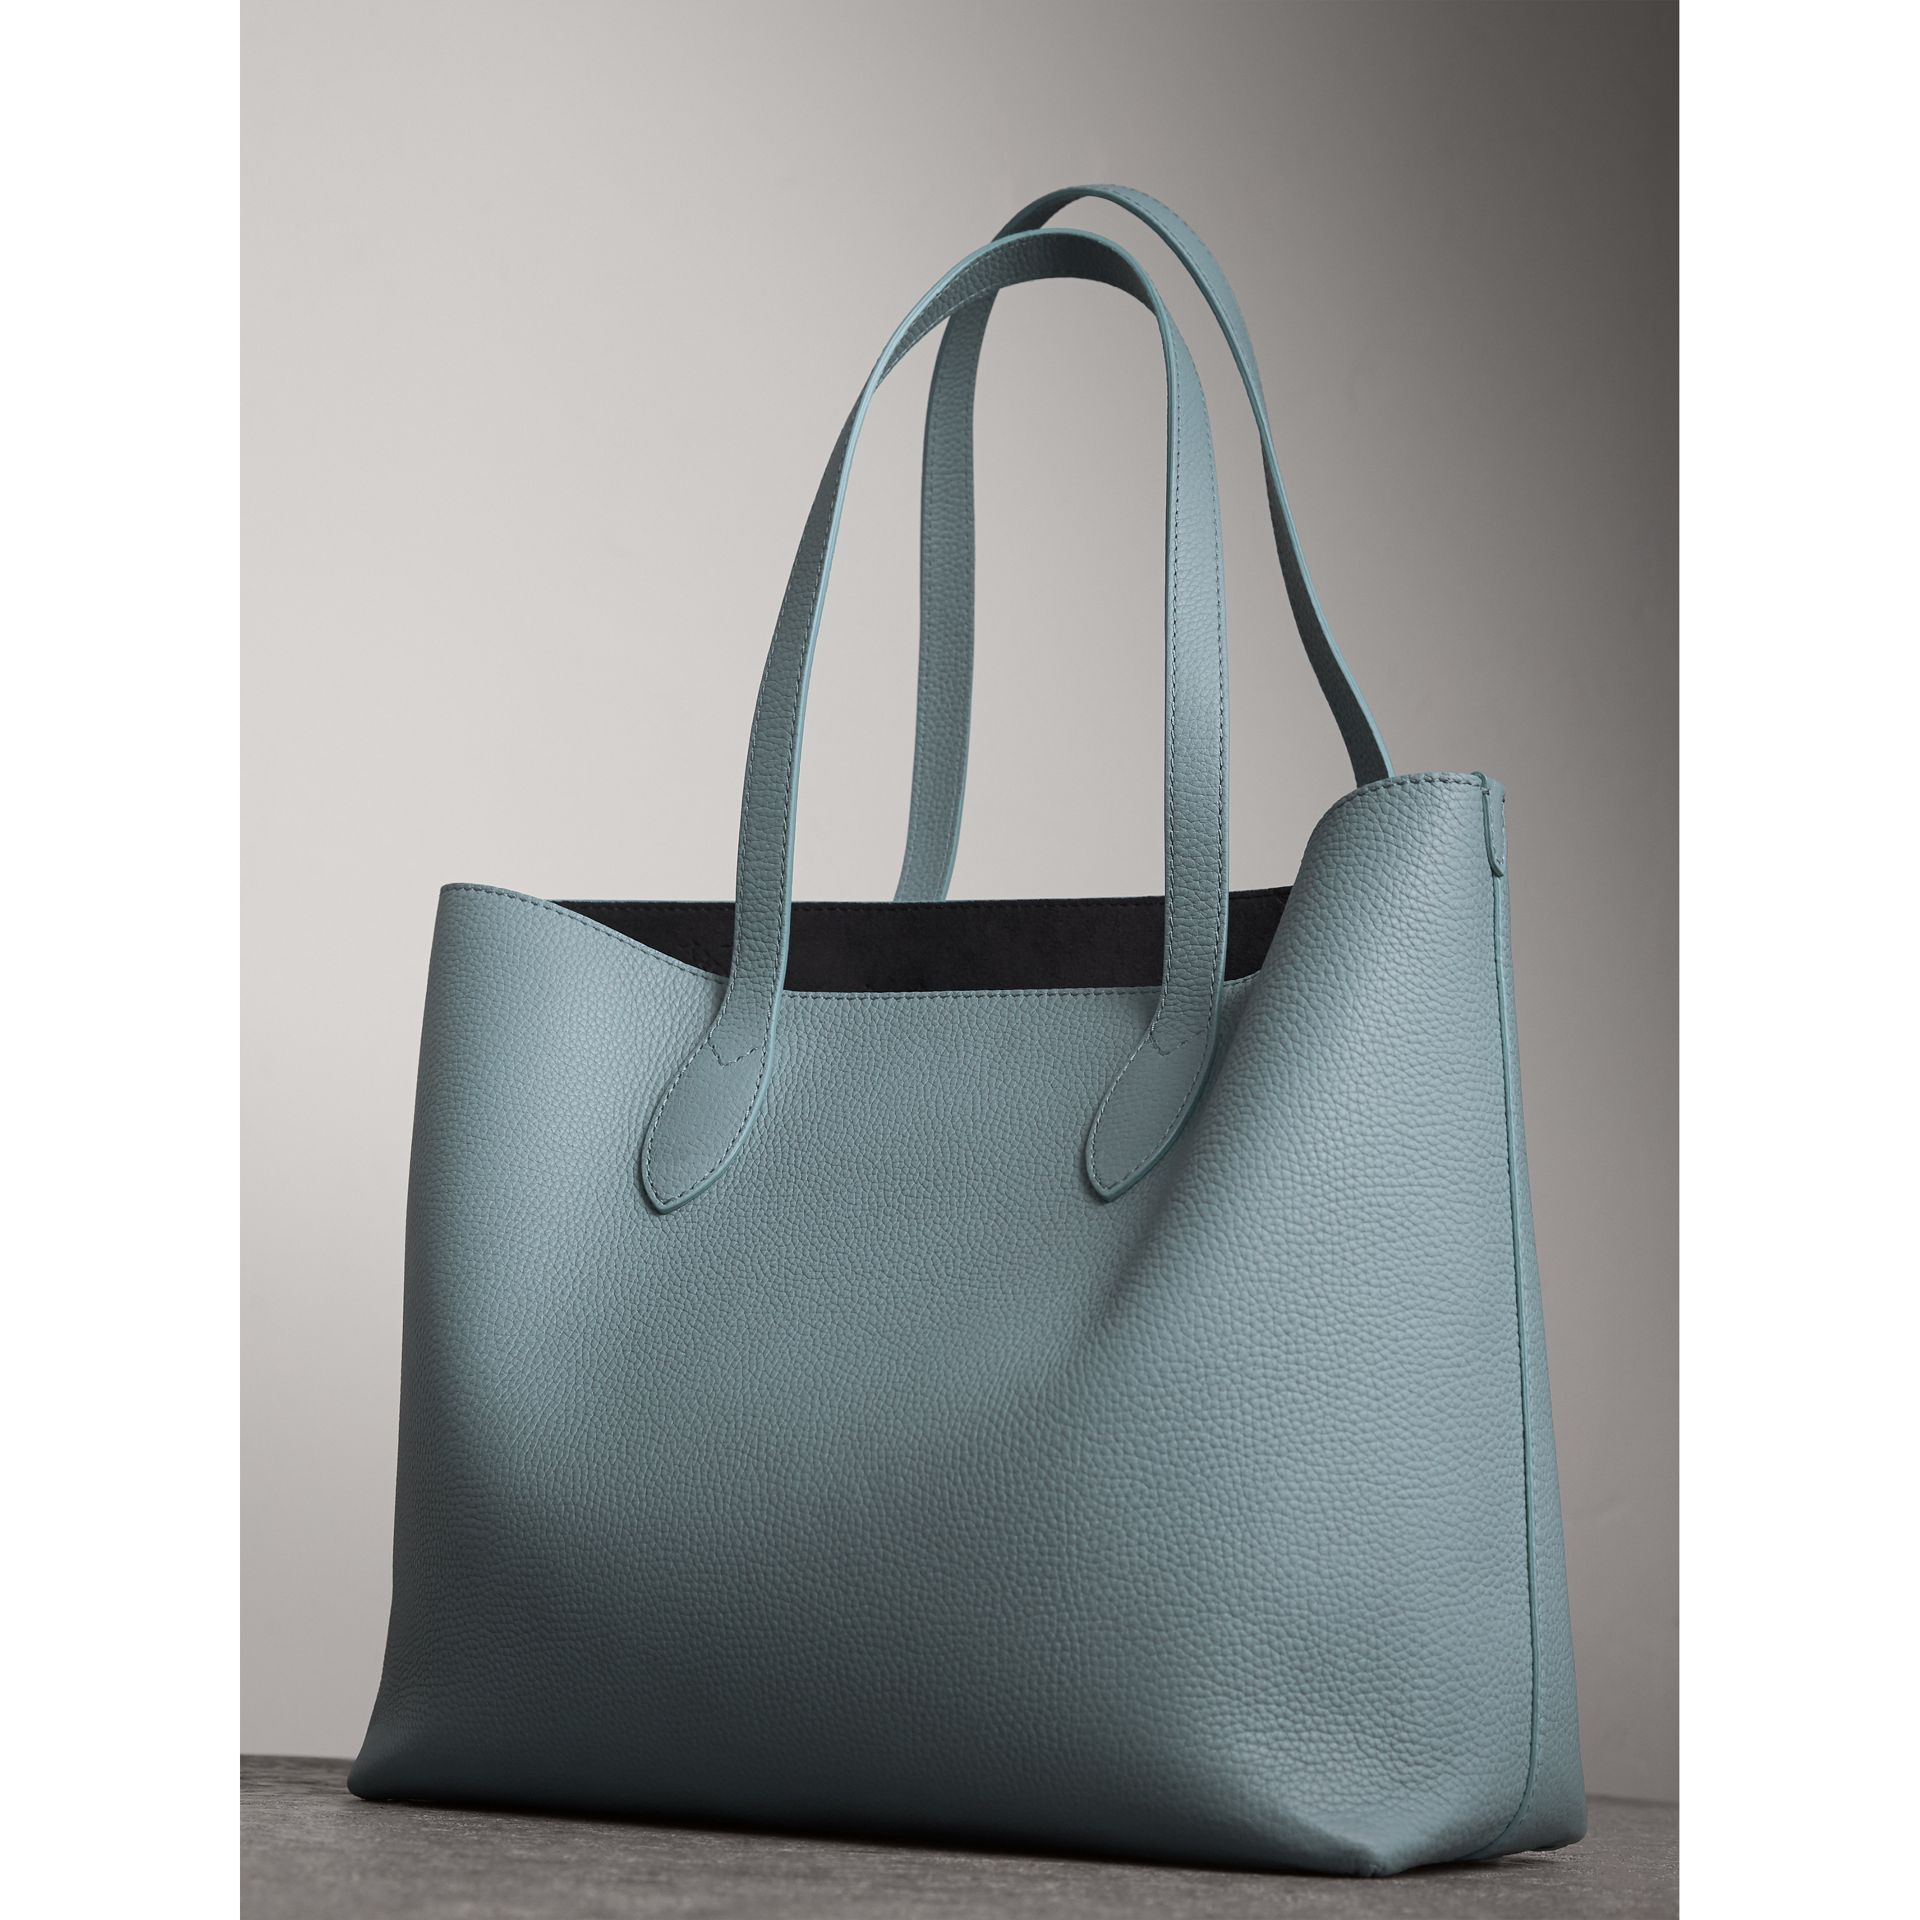 Medium Embossed Leather Tote in Dusty Teal Blue | Burberry - gallery image 4